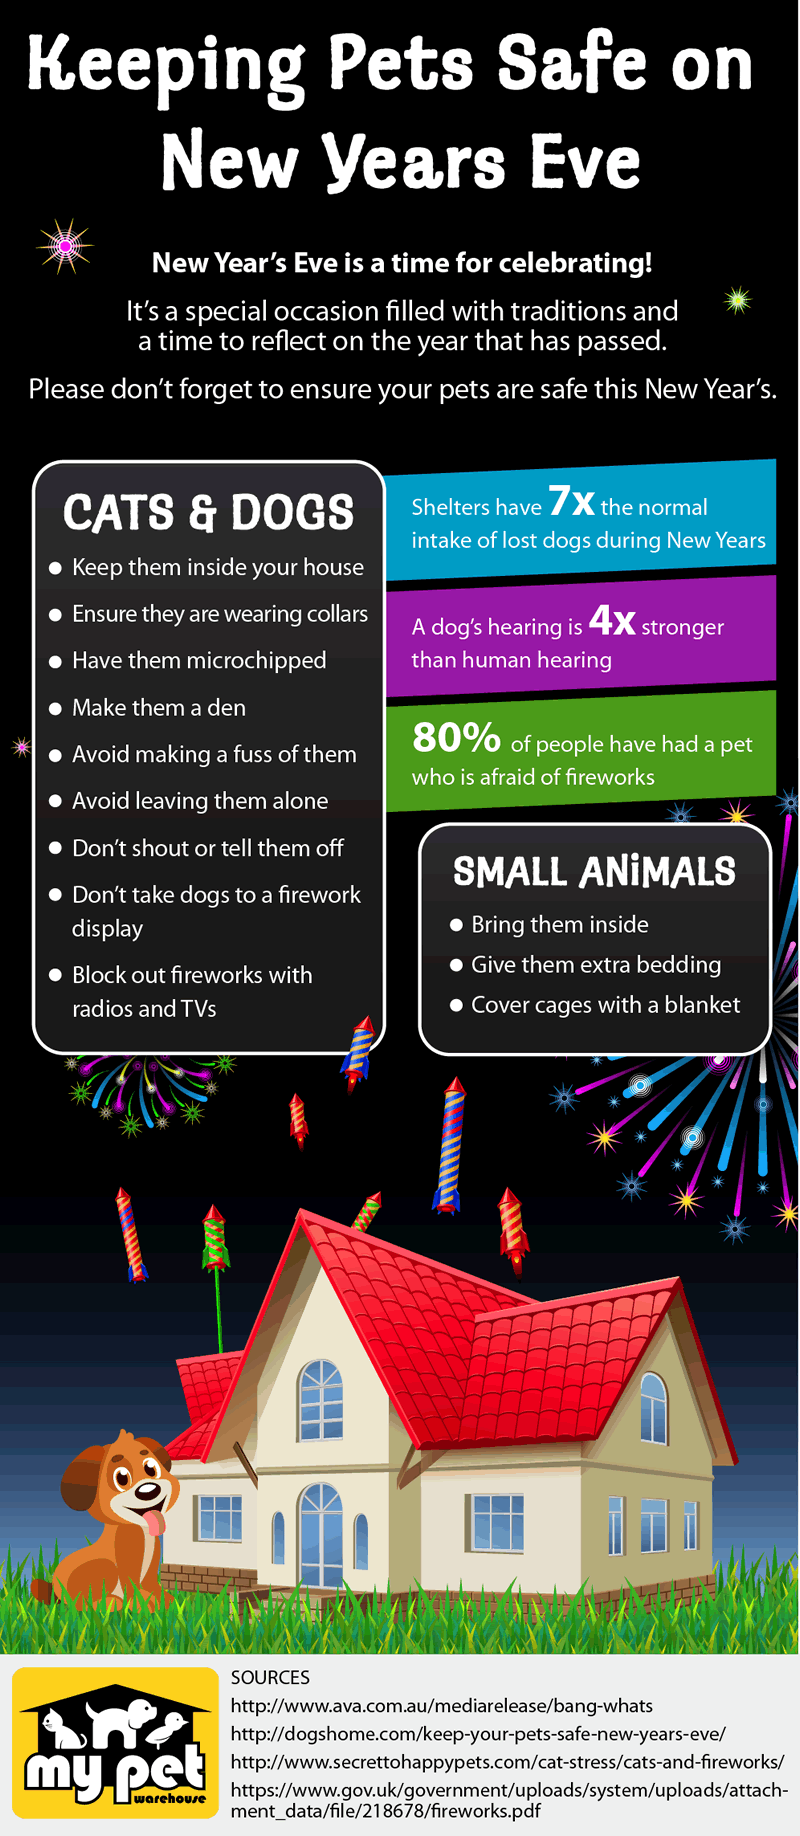 pet safety on new year's eve